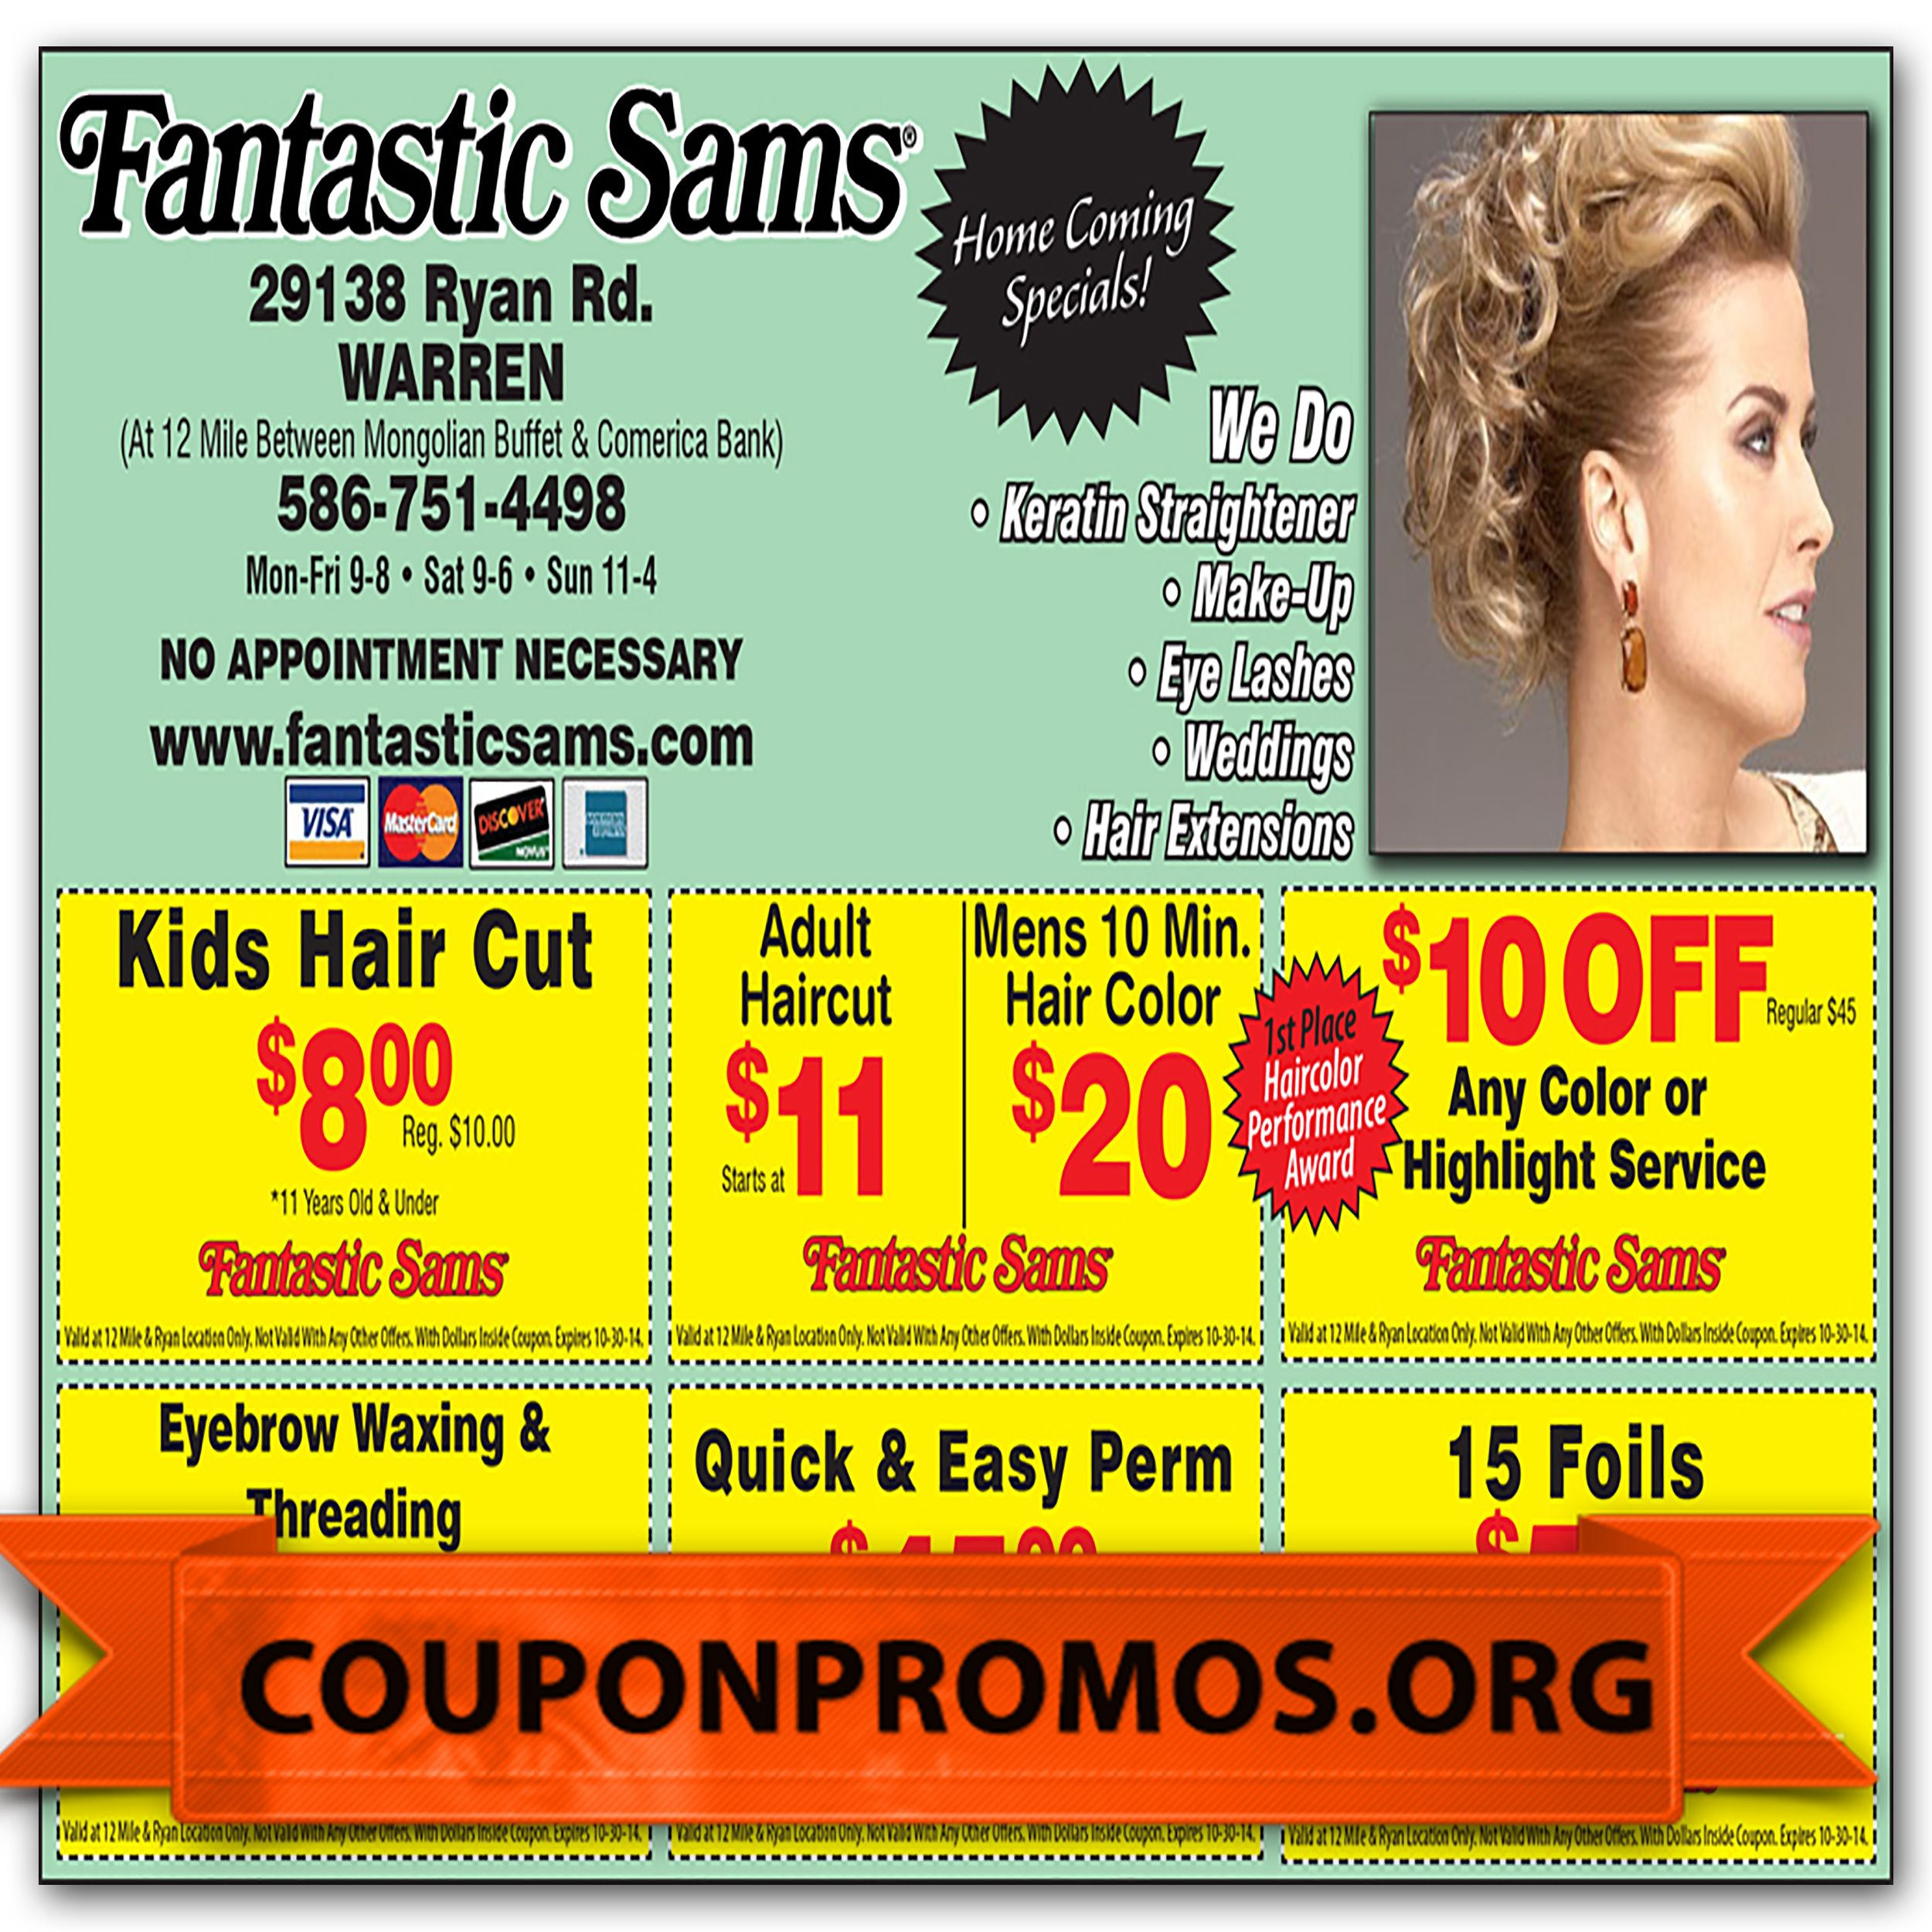 graphic relating to Fantastic Sams Printable Coupon named free of charge outstanding sams discounted discount coupons printable for November